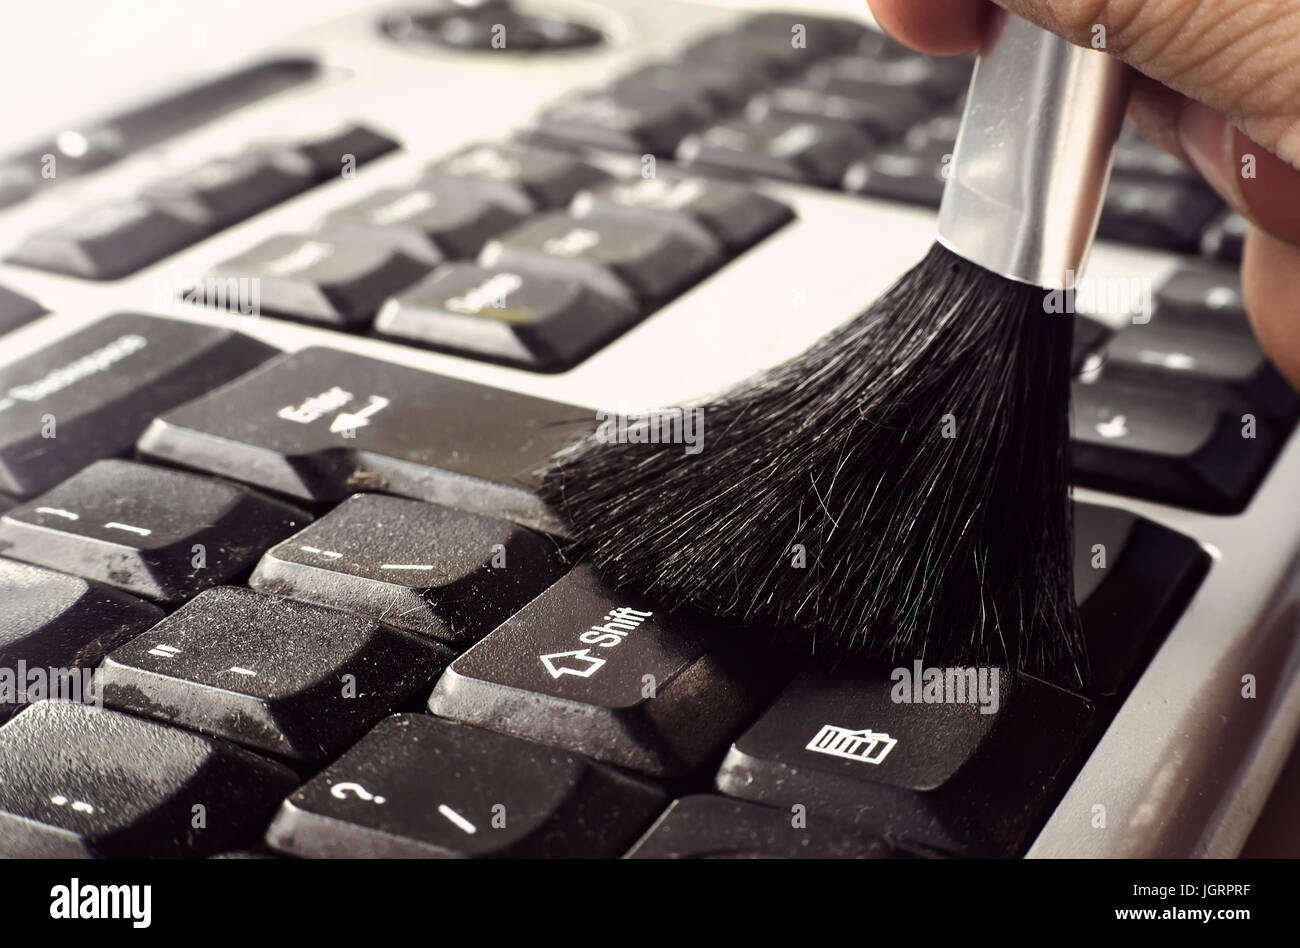 cleaning keyboard with brush. removing dust from a dirty keyboard on the compute Stock Photo